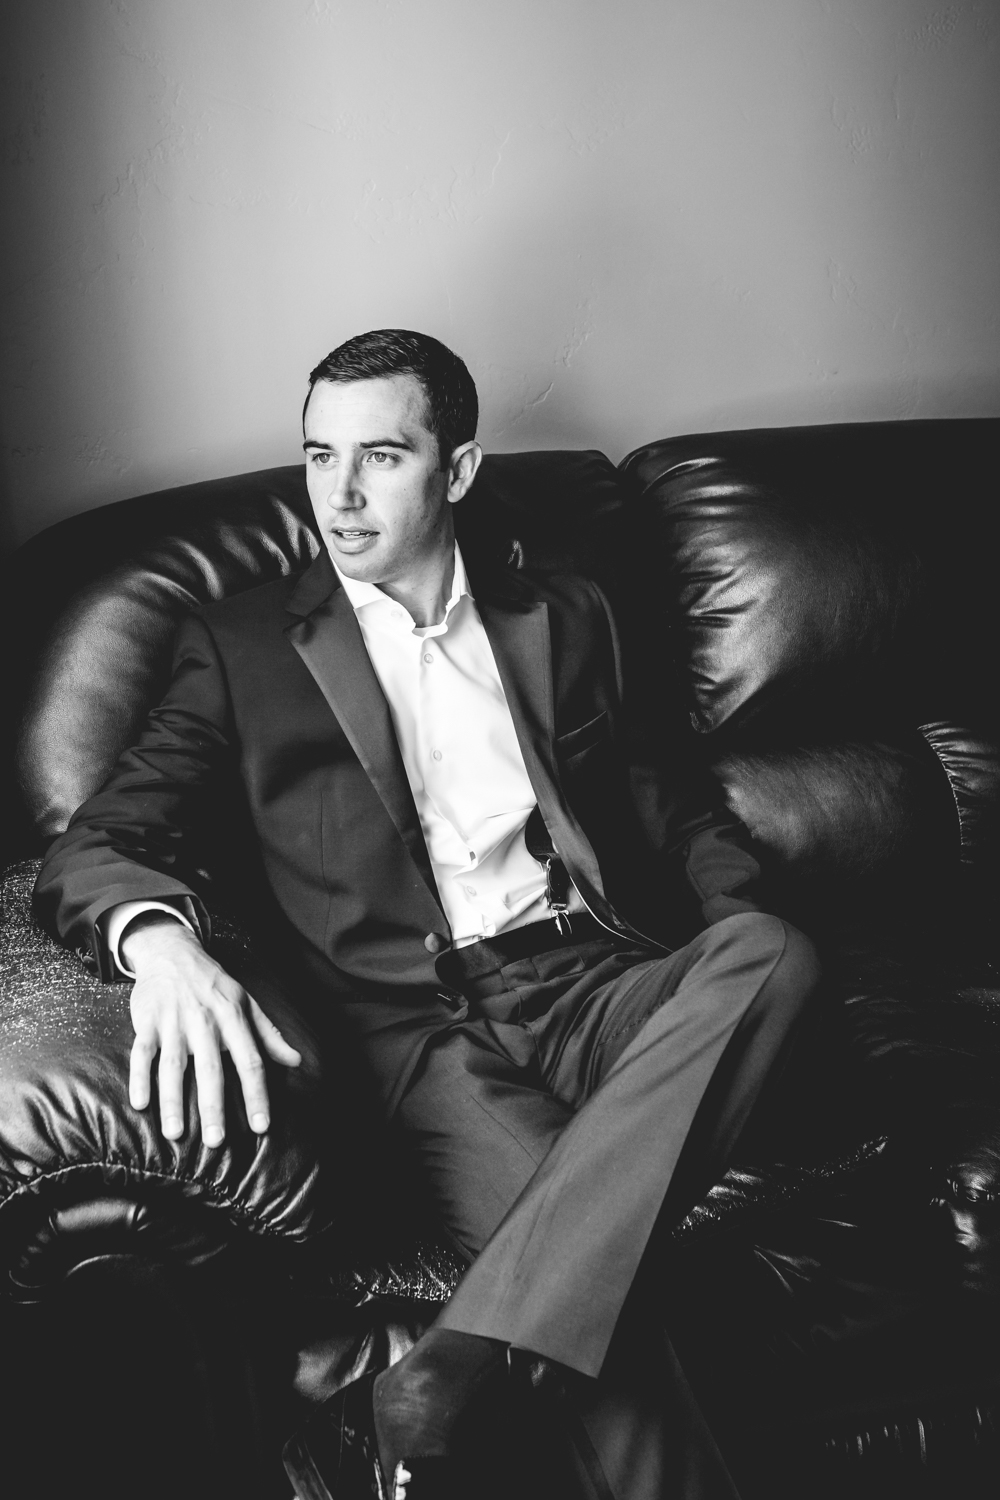 Groom waiting patiently for his Vail Colorado Wedding photographed by JMGant Photography.